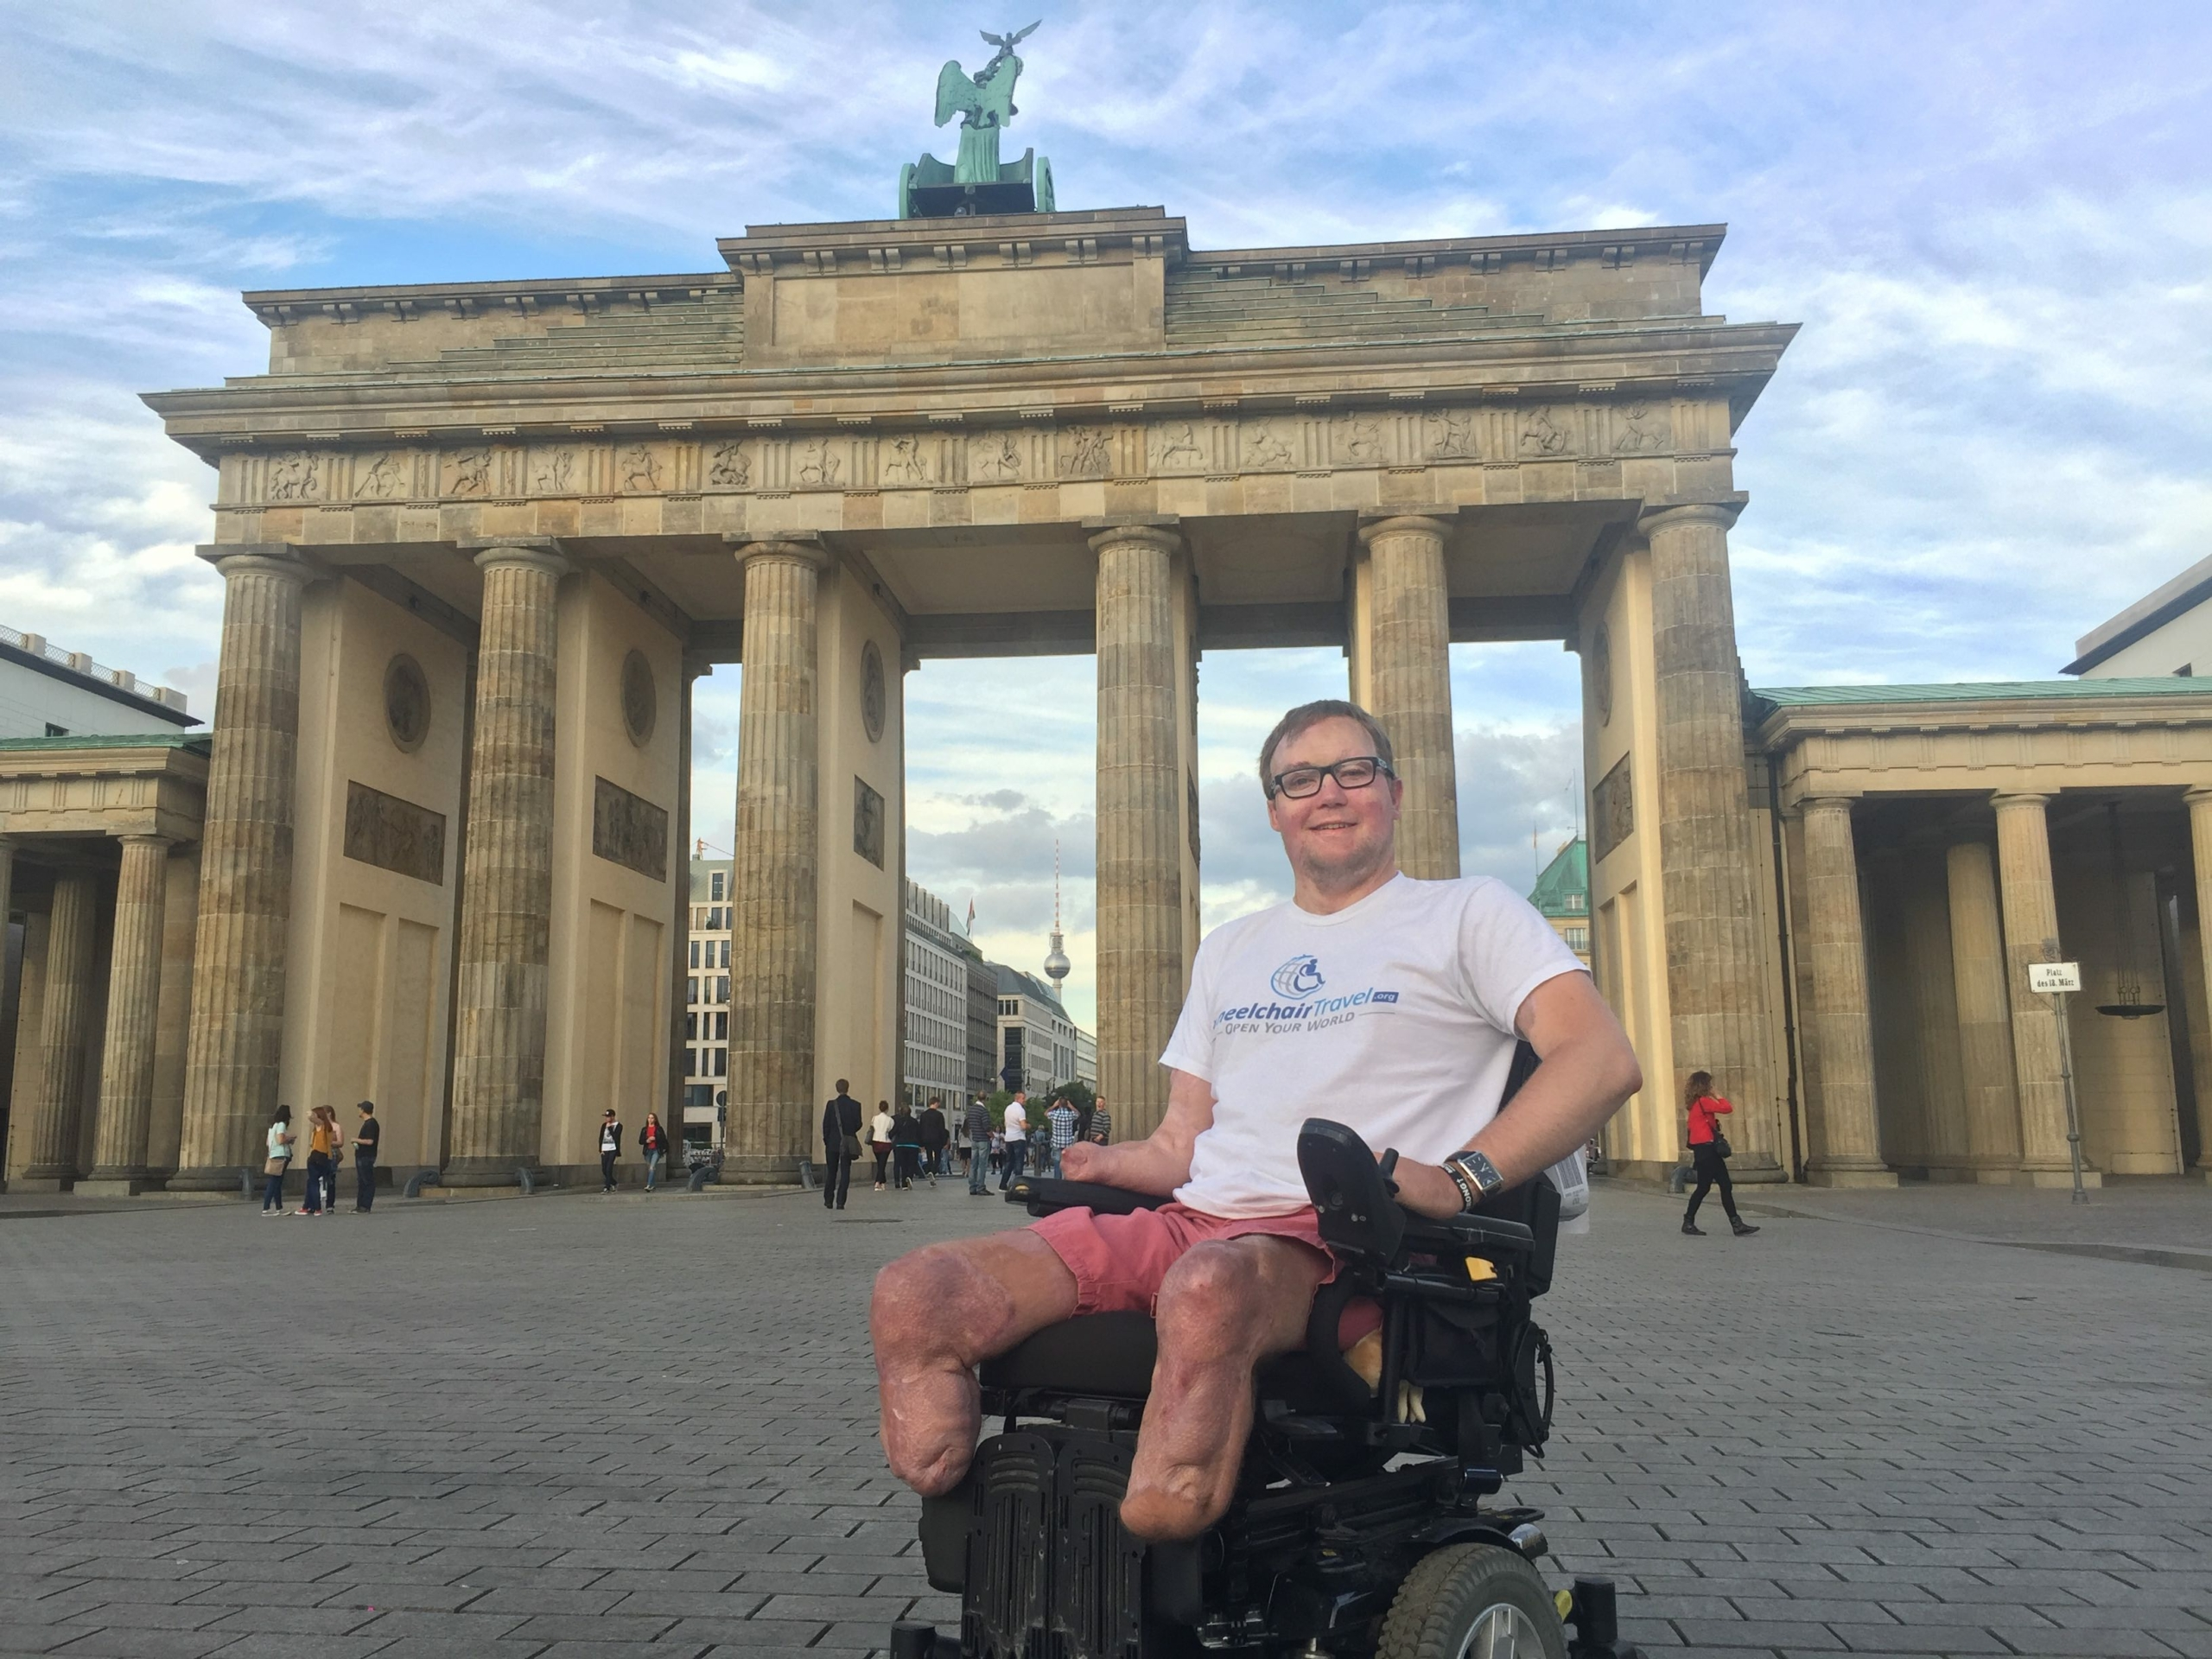 power wheelchair user shown smiling in front of monument